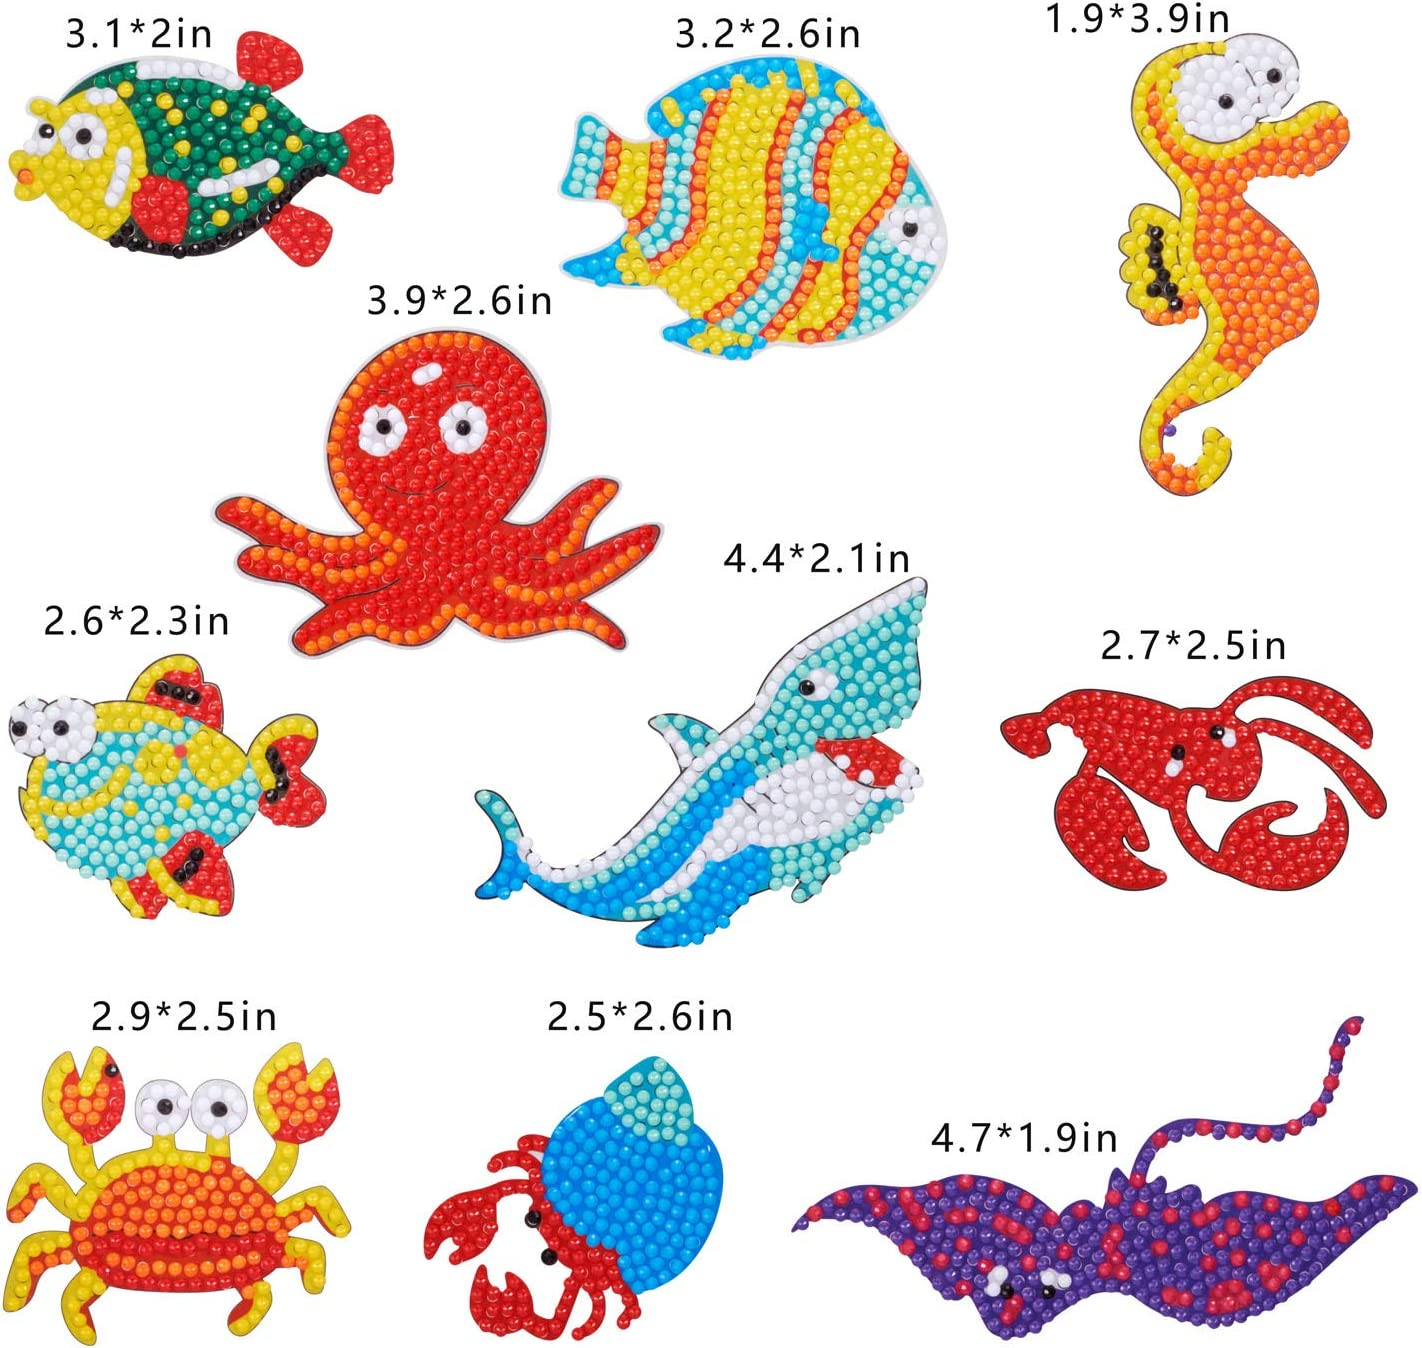 Suprcool 10 Pieces Underwater World Diamond Painting Stickers Kits for Kids,DIY Cute Animal 5D Diamond Art Mosaic Stickers by Numbers Kits for Children,Boys and Girls